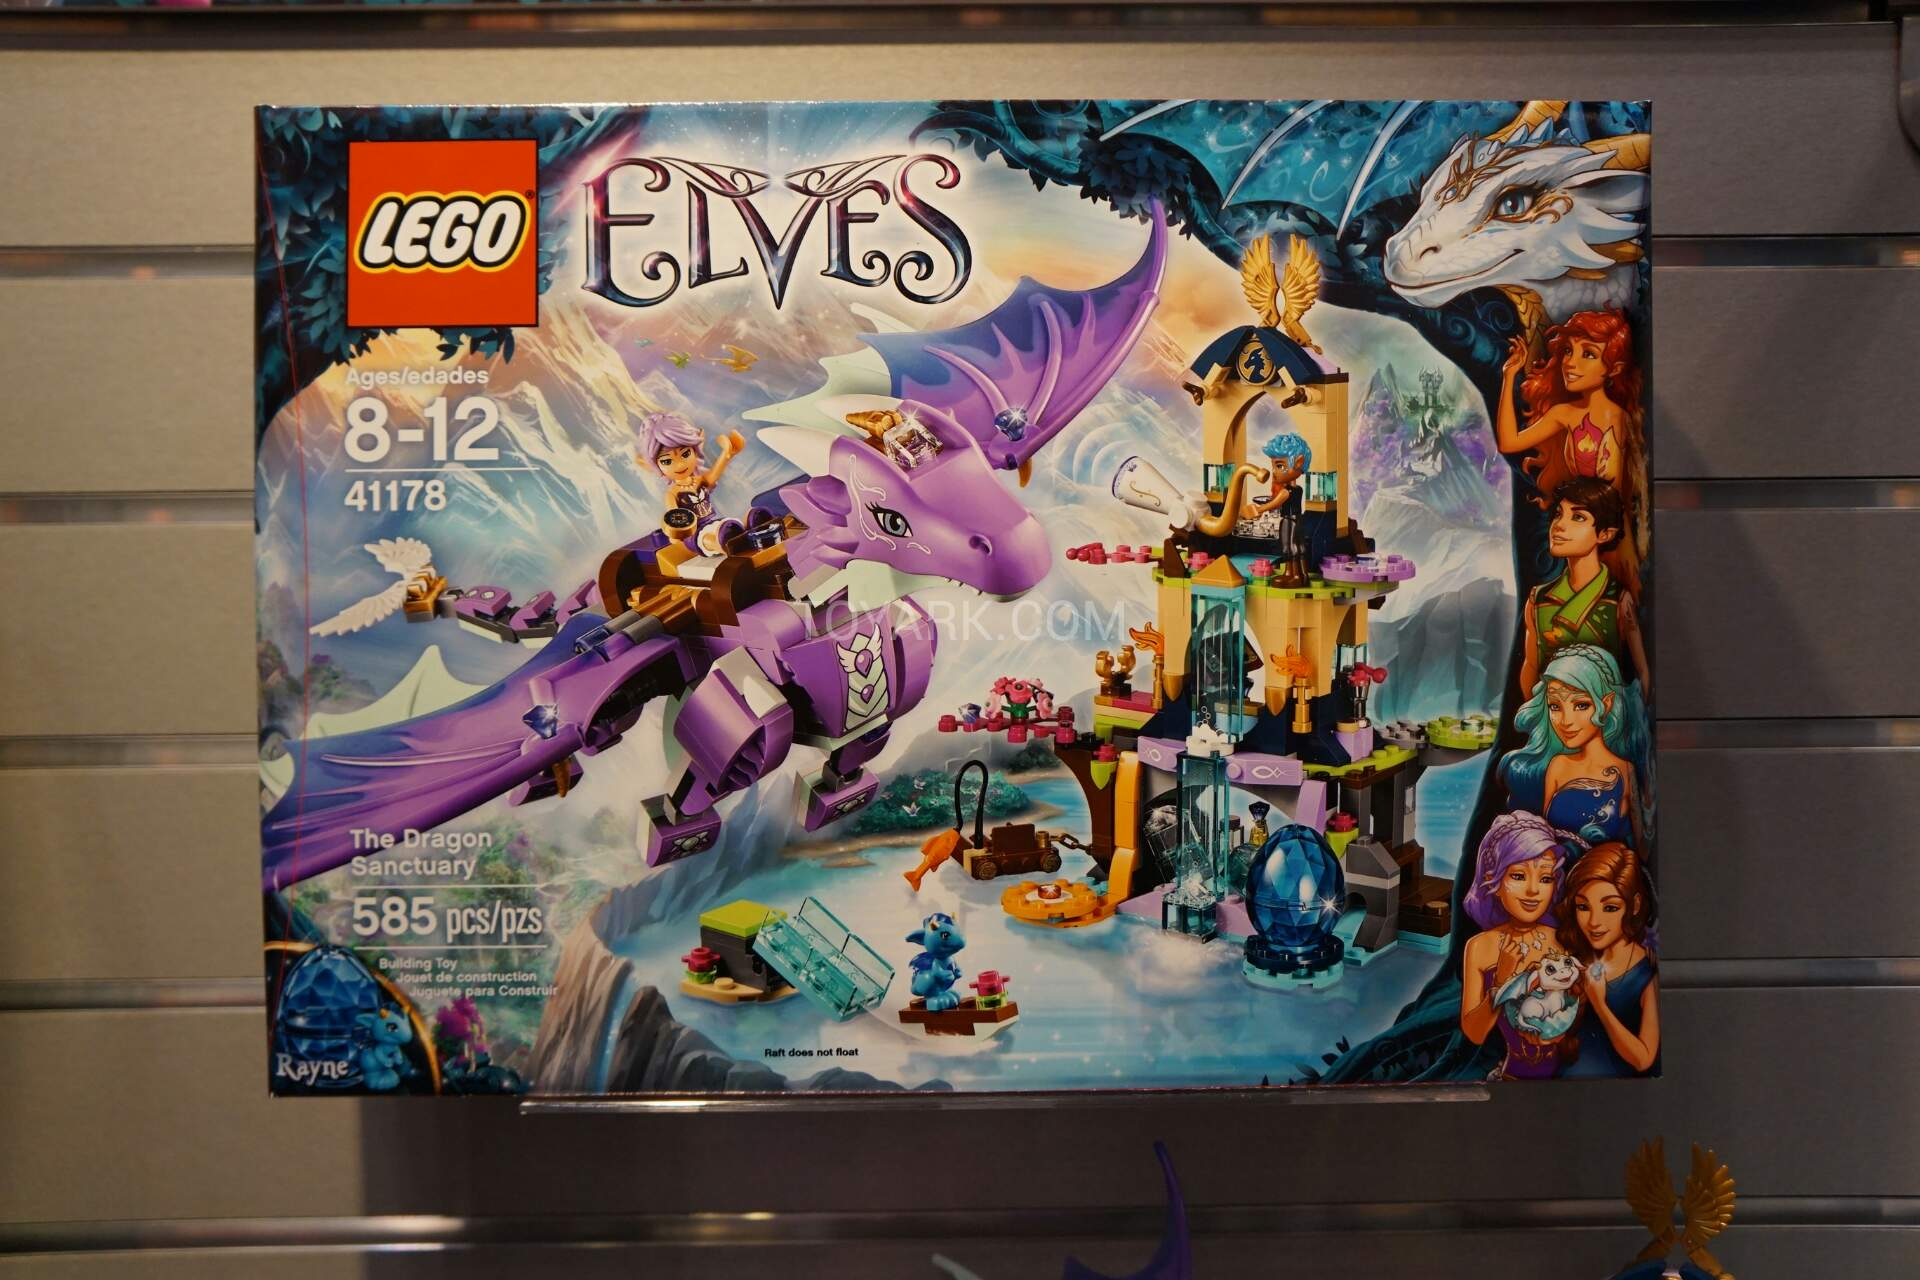 Dragon Sala Set Olx 41178 The Dragon Sanctuary Elves Brickpicker